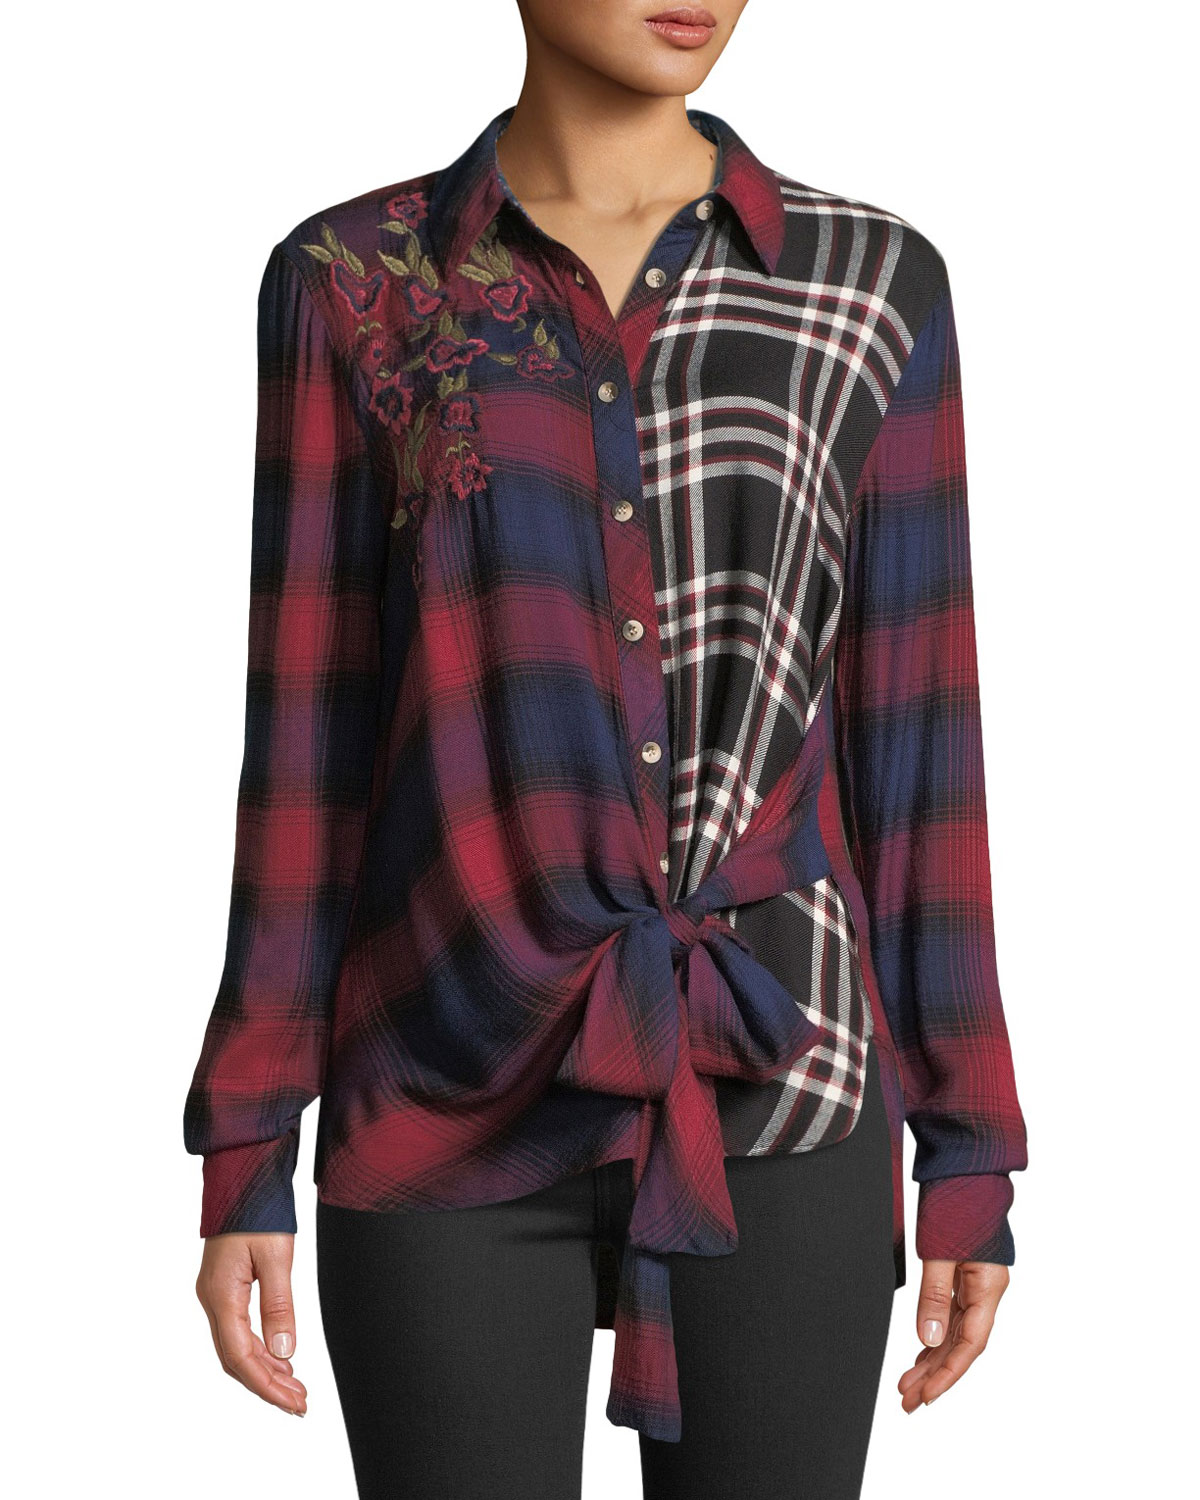 TOLANI CAREY BUTTON-FRONT LONG-SLEEVE TIE-FRONT MIXED-PLAID BLOUSE W/ FLORAL-EMBROIDERY, PLUS SIZE